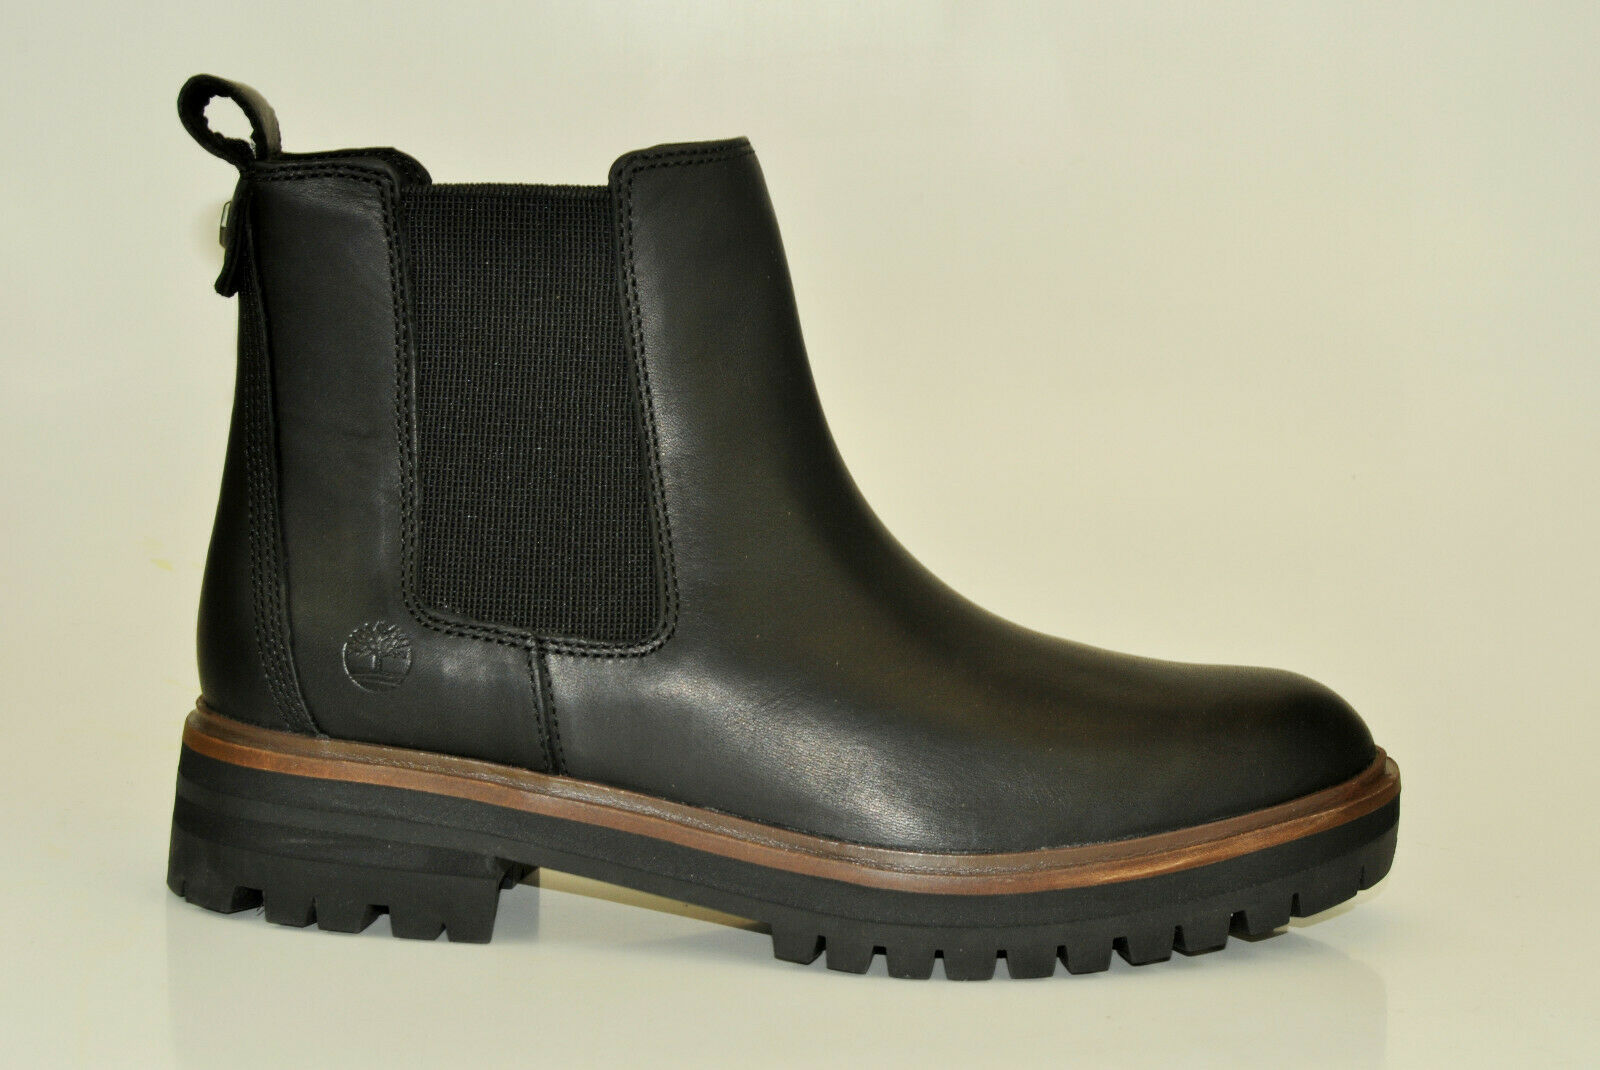 sangue immutato finanziario  Timberland London Square Chelsea BOOTS Size 39 5 US 8 5w Ladies Ankle A1RBJ  for sale online | eBay